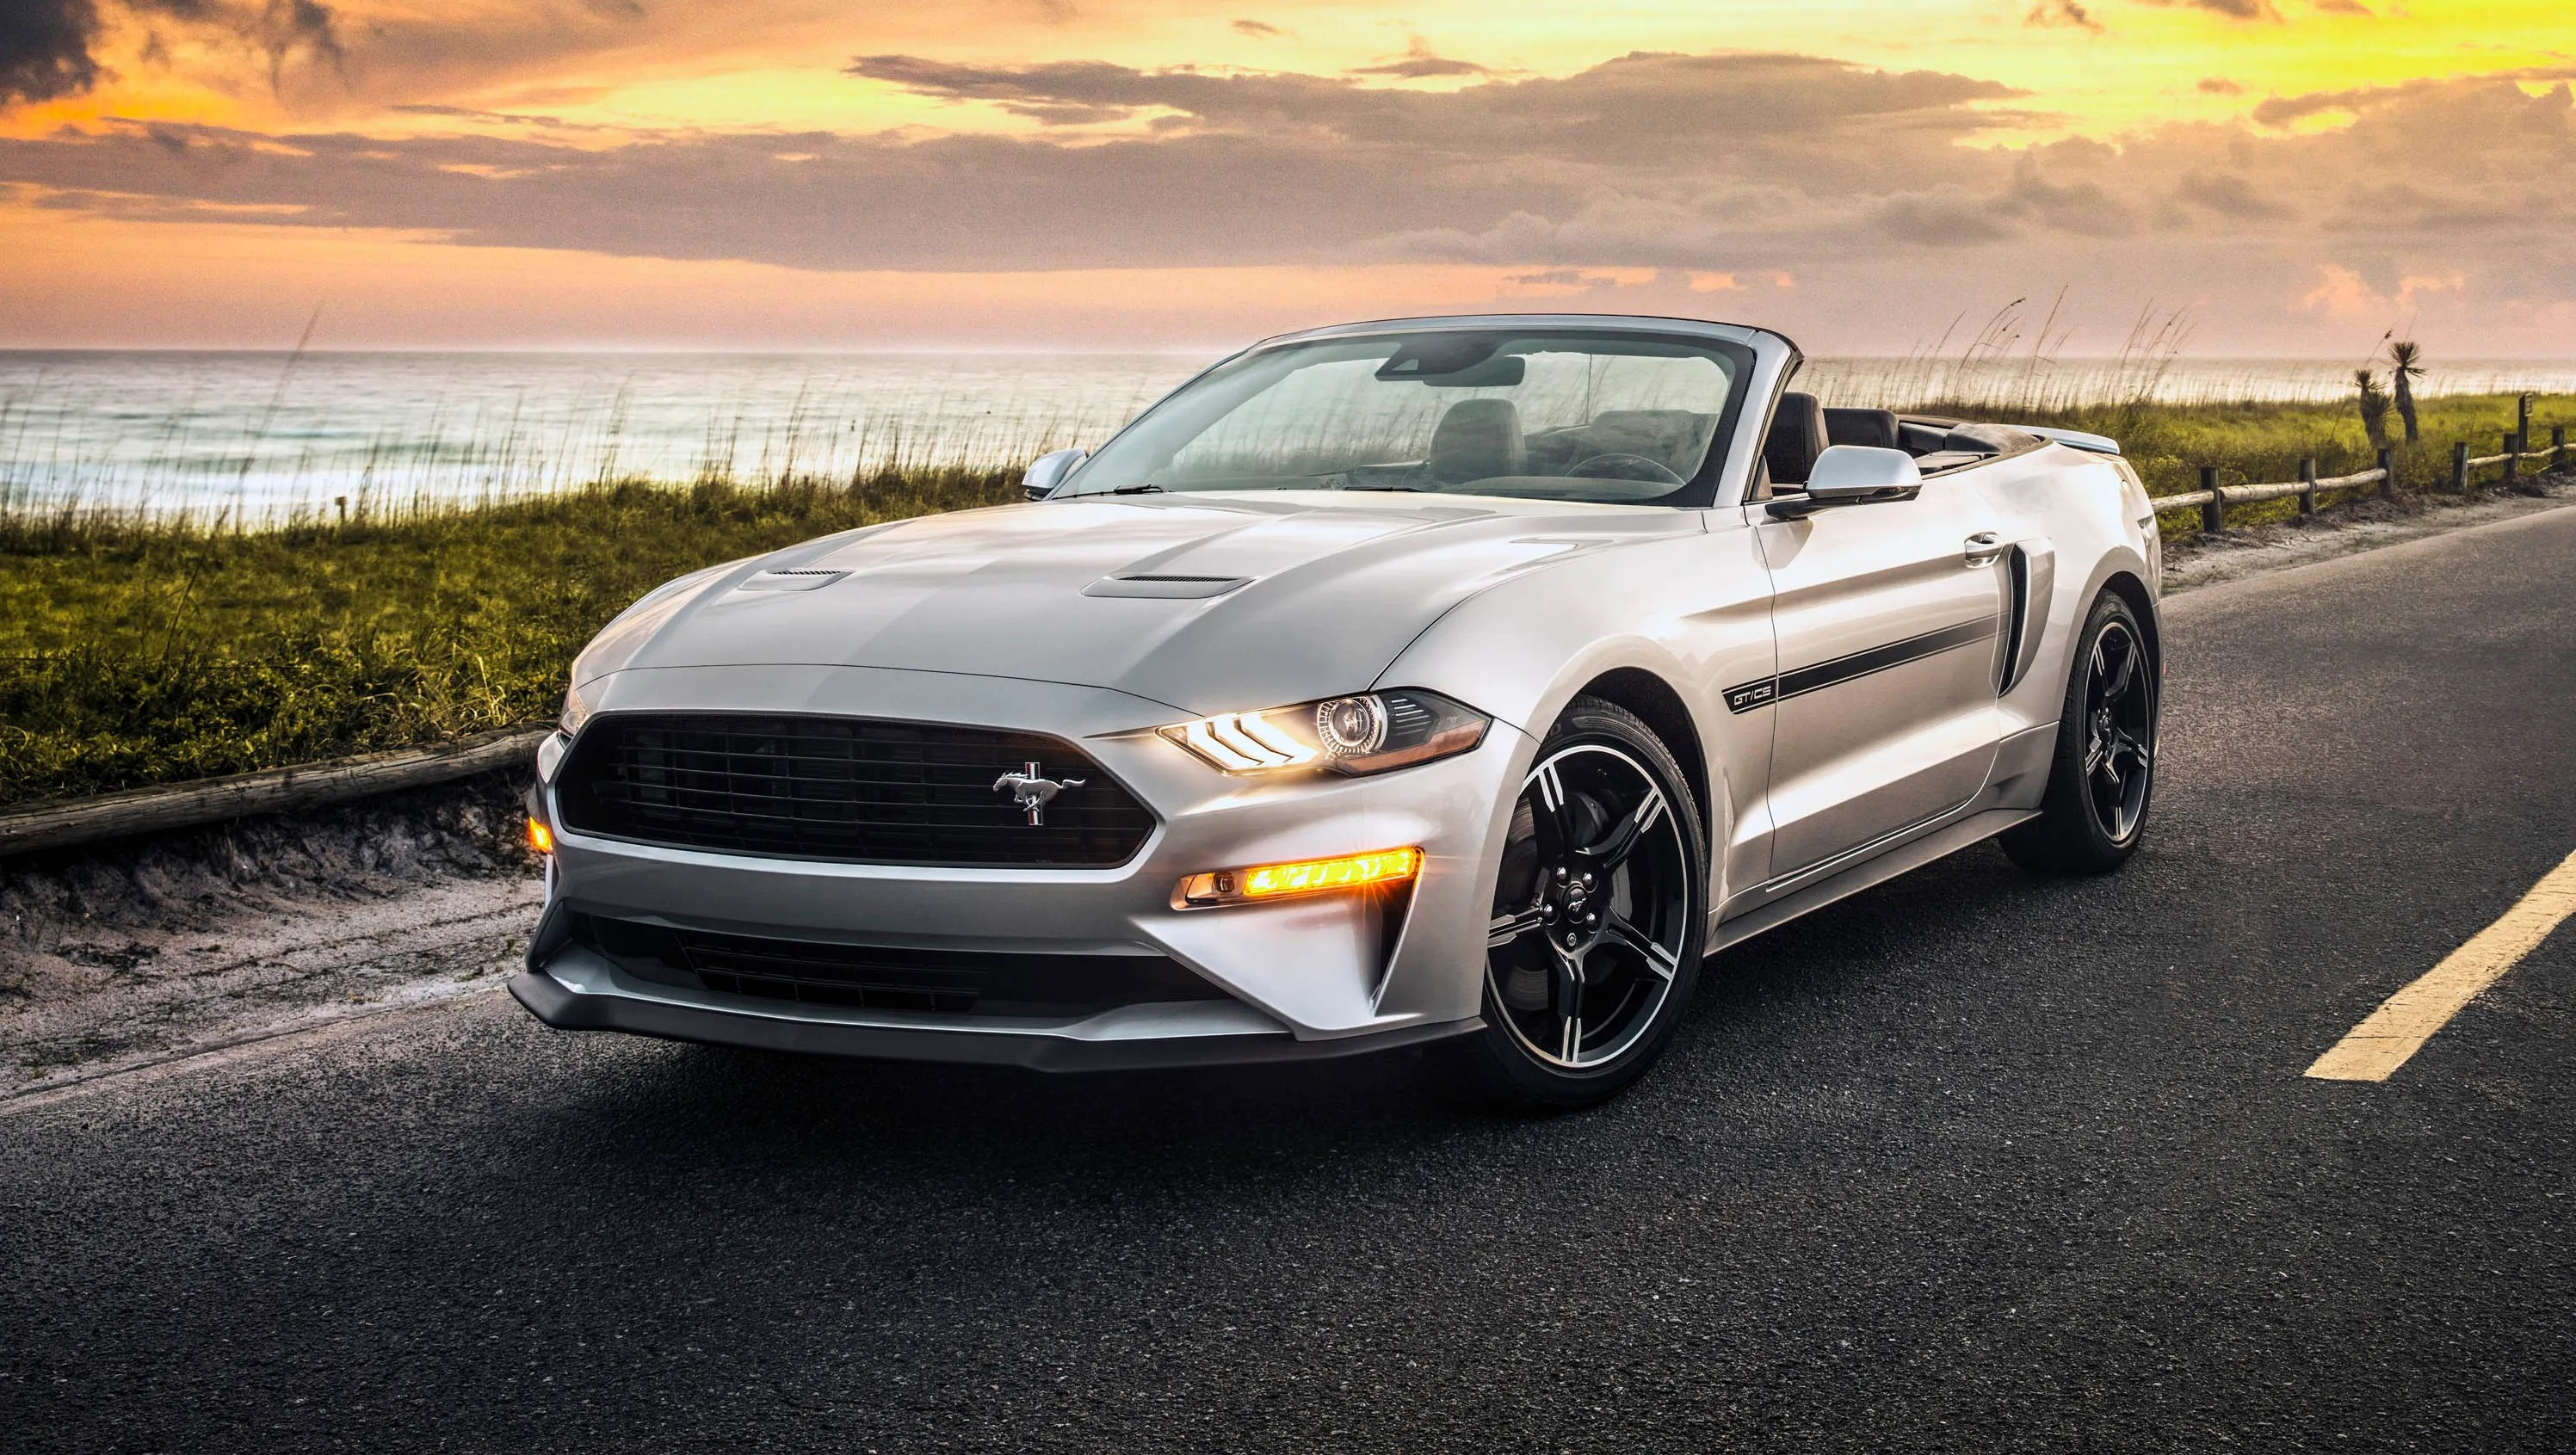 4k Wallpaper Muscle Car 2019 Ford Mustang Gt California Special Adds Muscle To Lineup